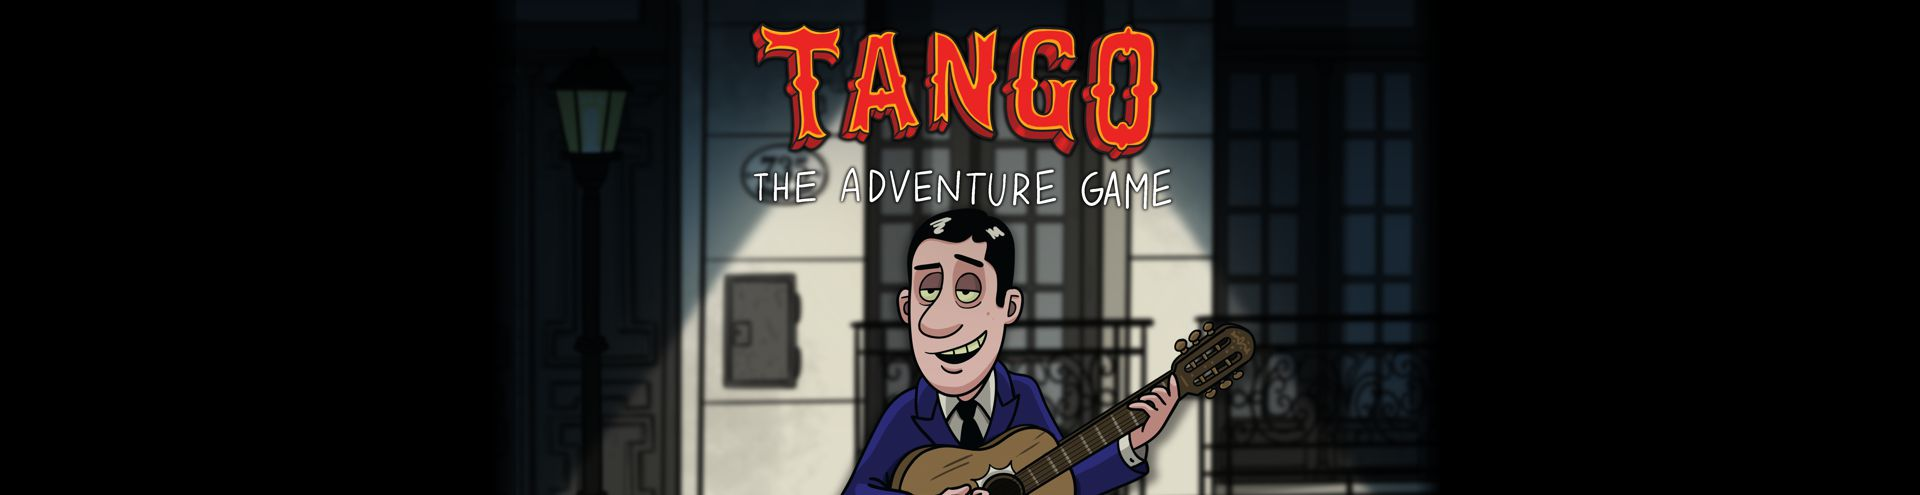 Tango: The Adventure